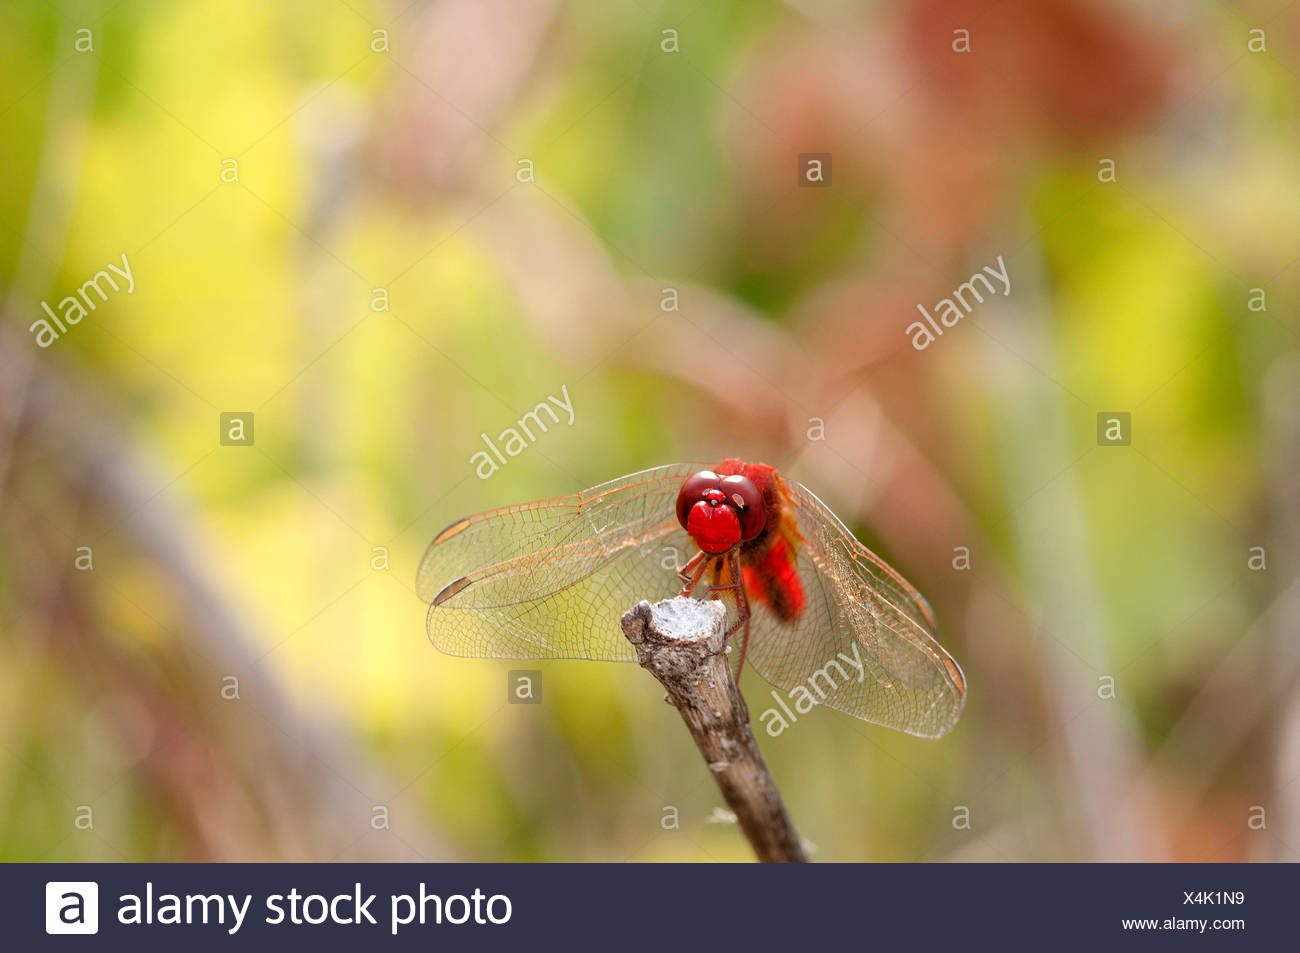 Scarlet Dragonfly, Broad Scarlet, France, Crocothemis erythraea, scarlet darter, insect, dragonfly, red, crocothemis erythraea, Stock Photo